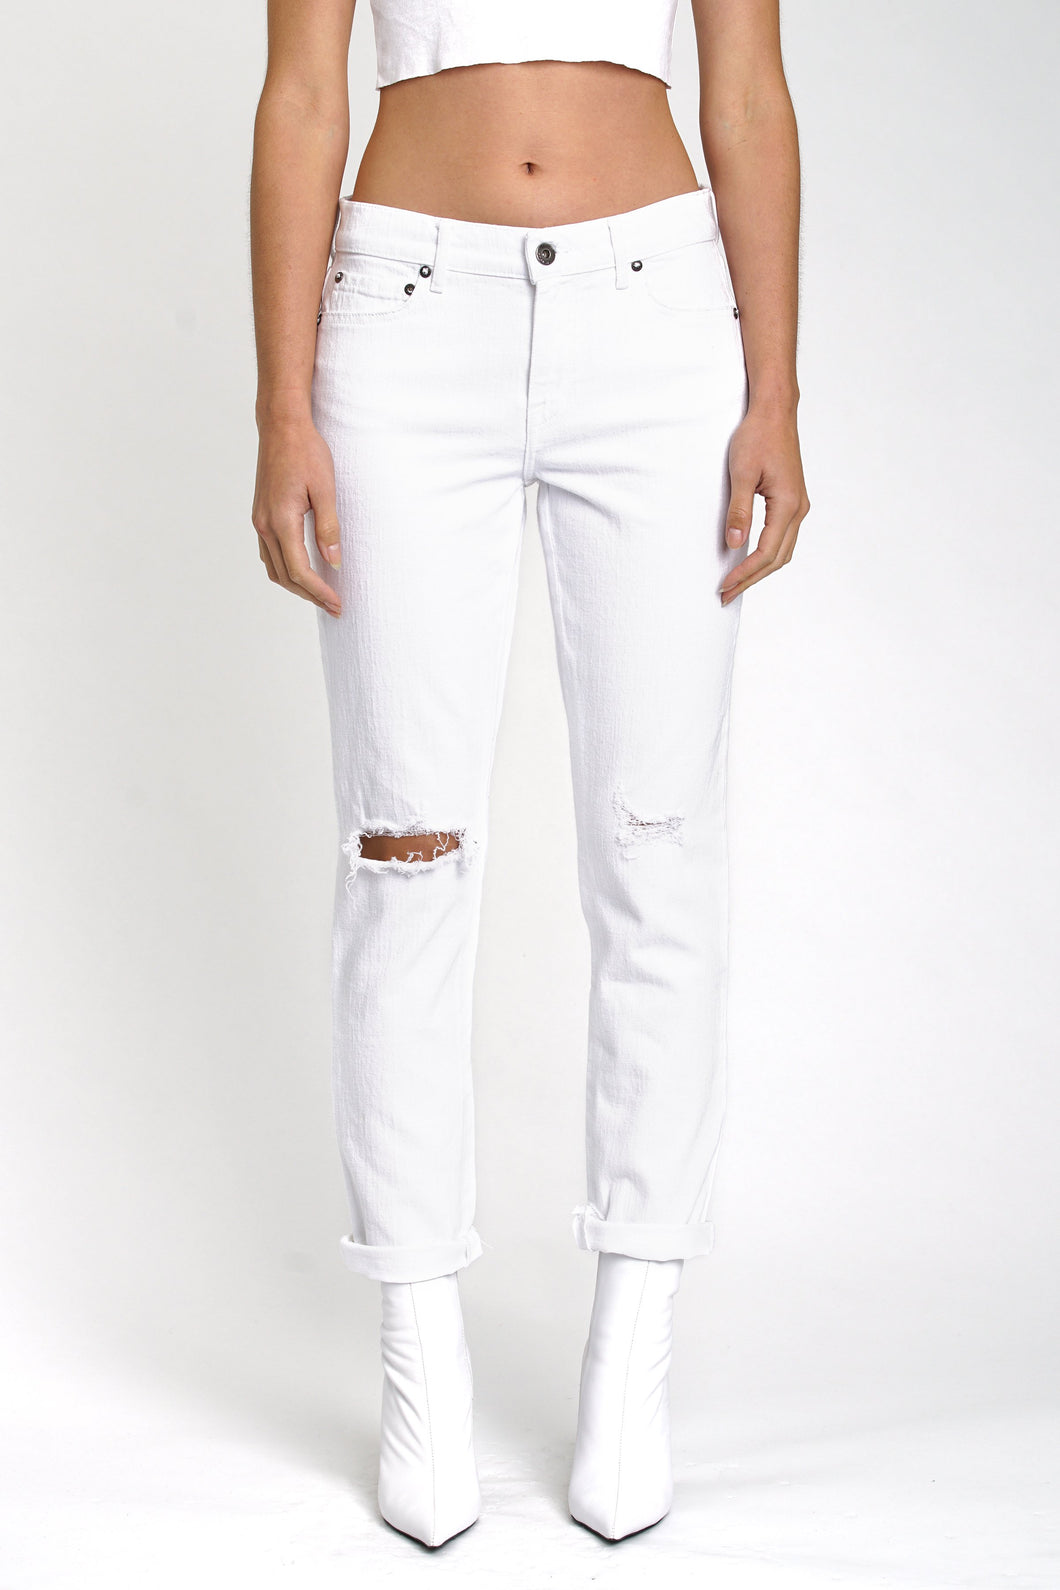 Pistola Mason Low Rise Slim Boyfriend In Ice Breaker